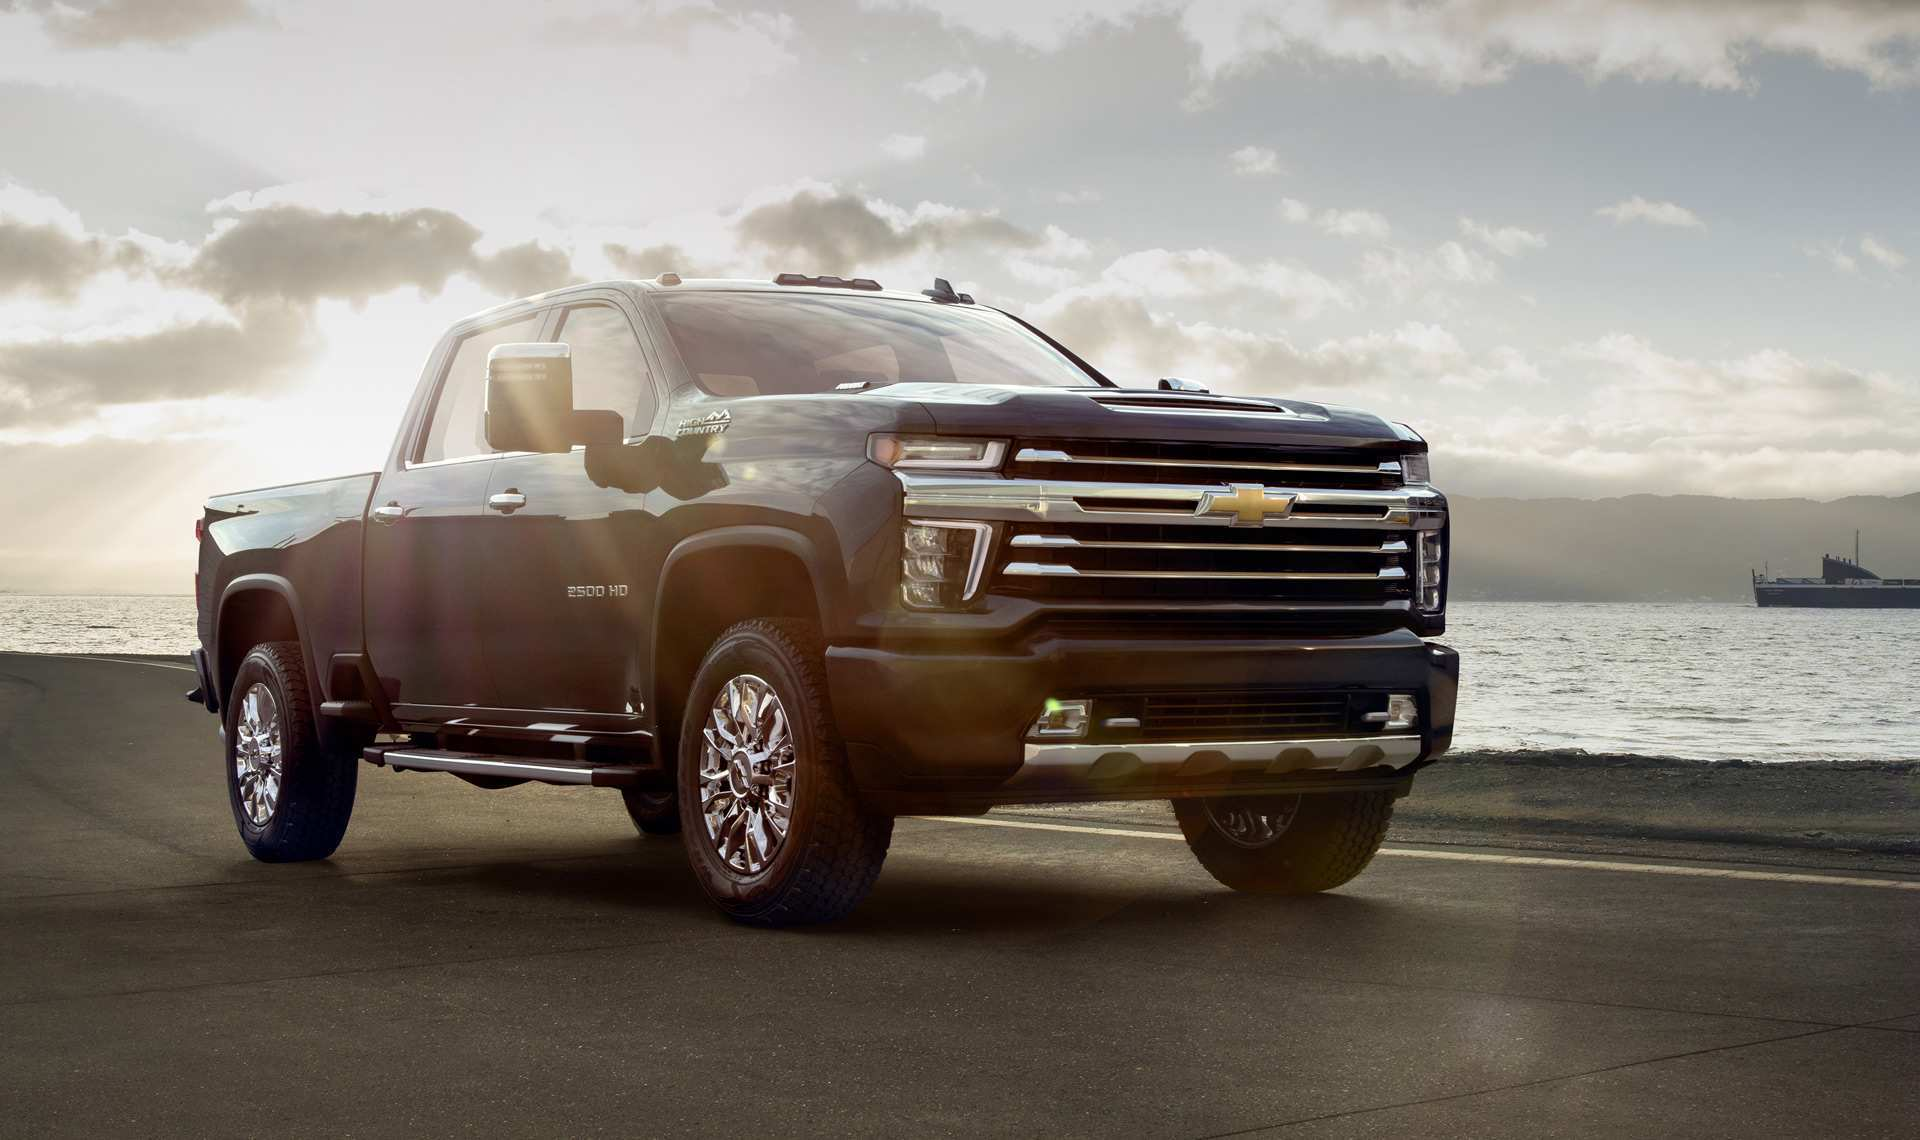 36 Gallery of 2020 Chevrolet 2500 Ltz Picture with 2020 Chevrolet 2500 Ltz